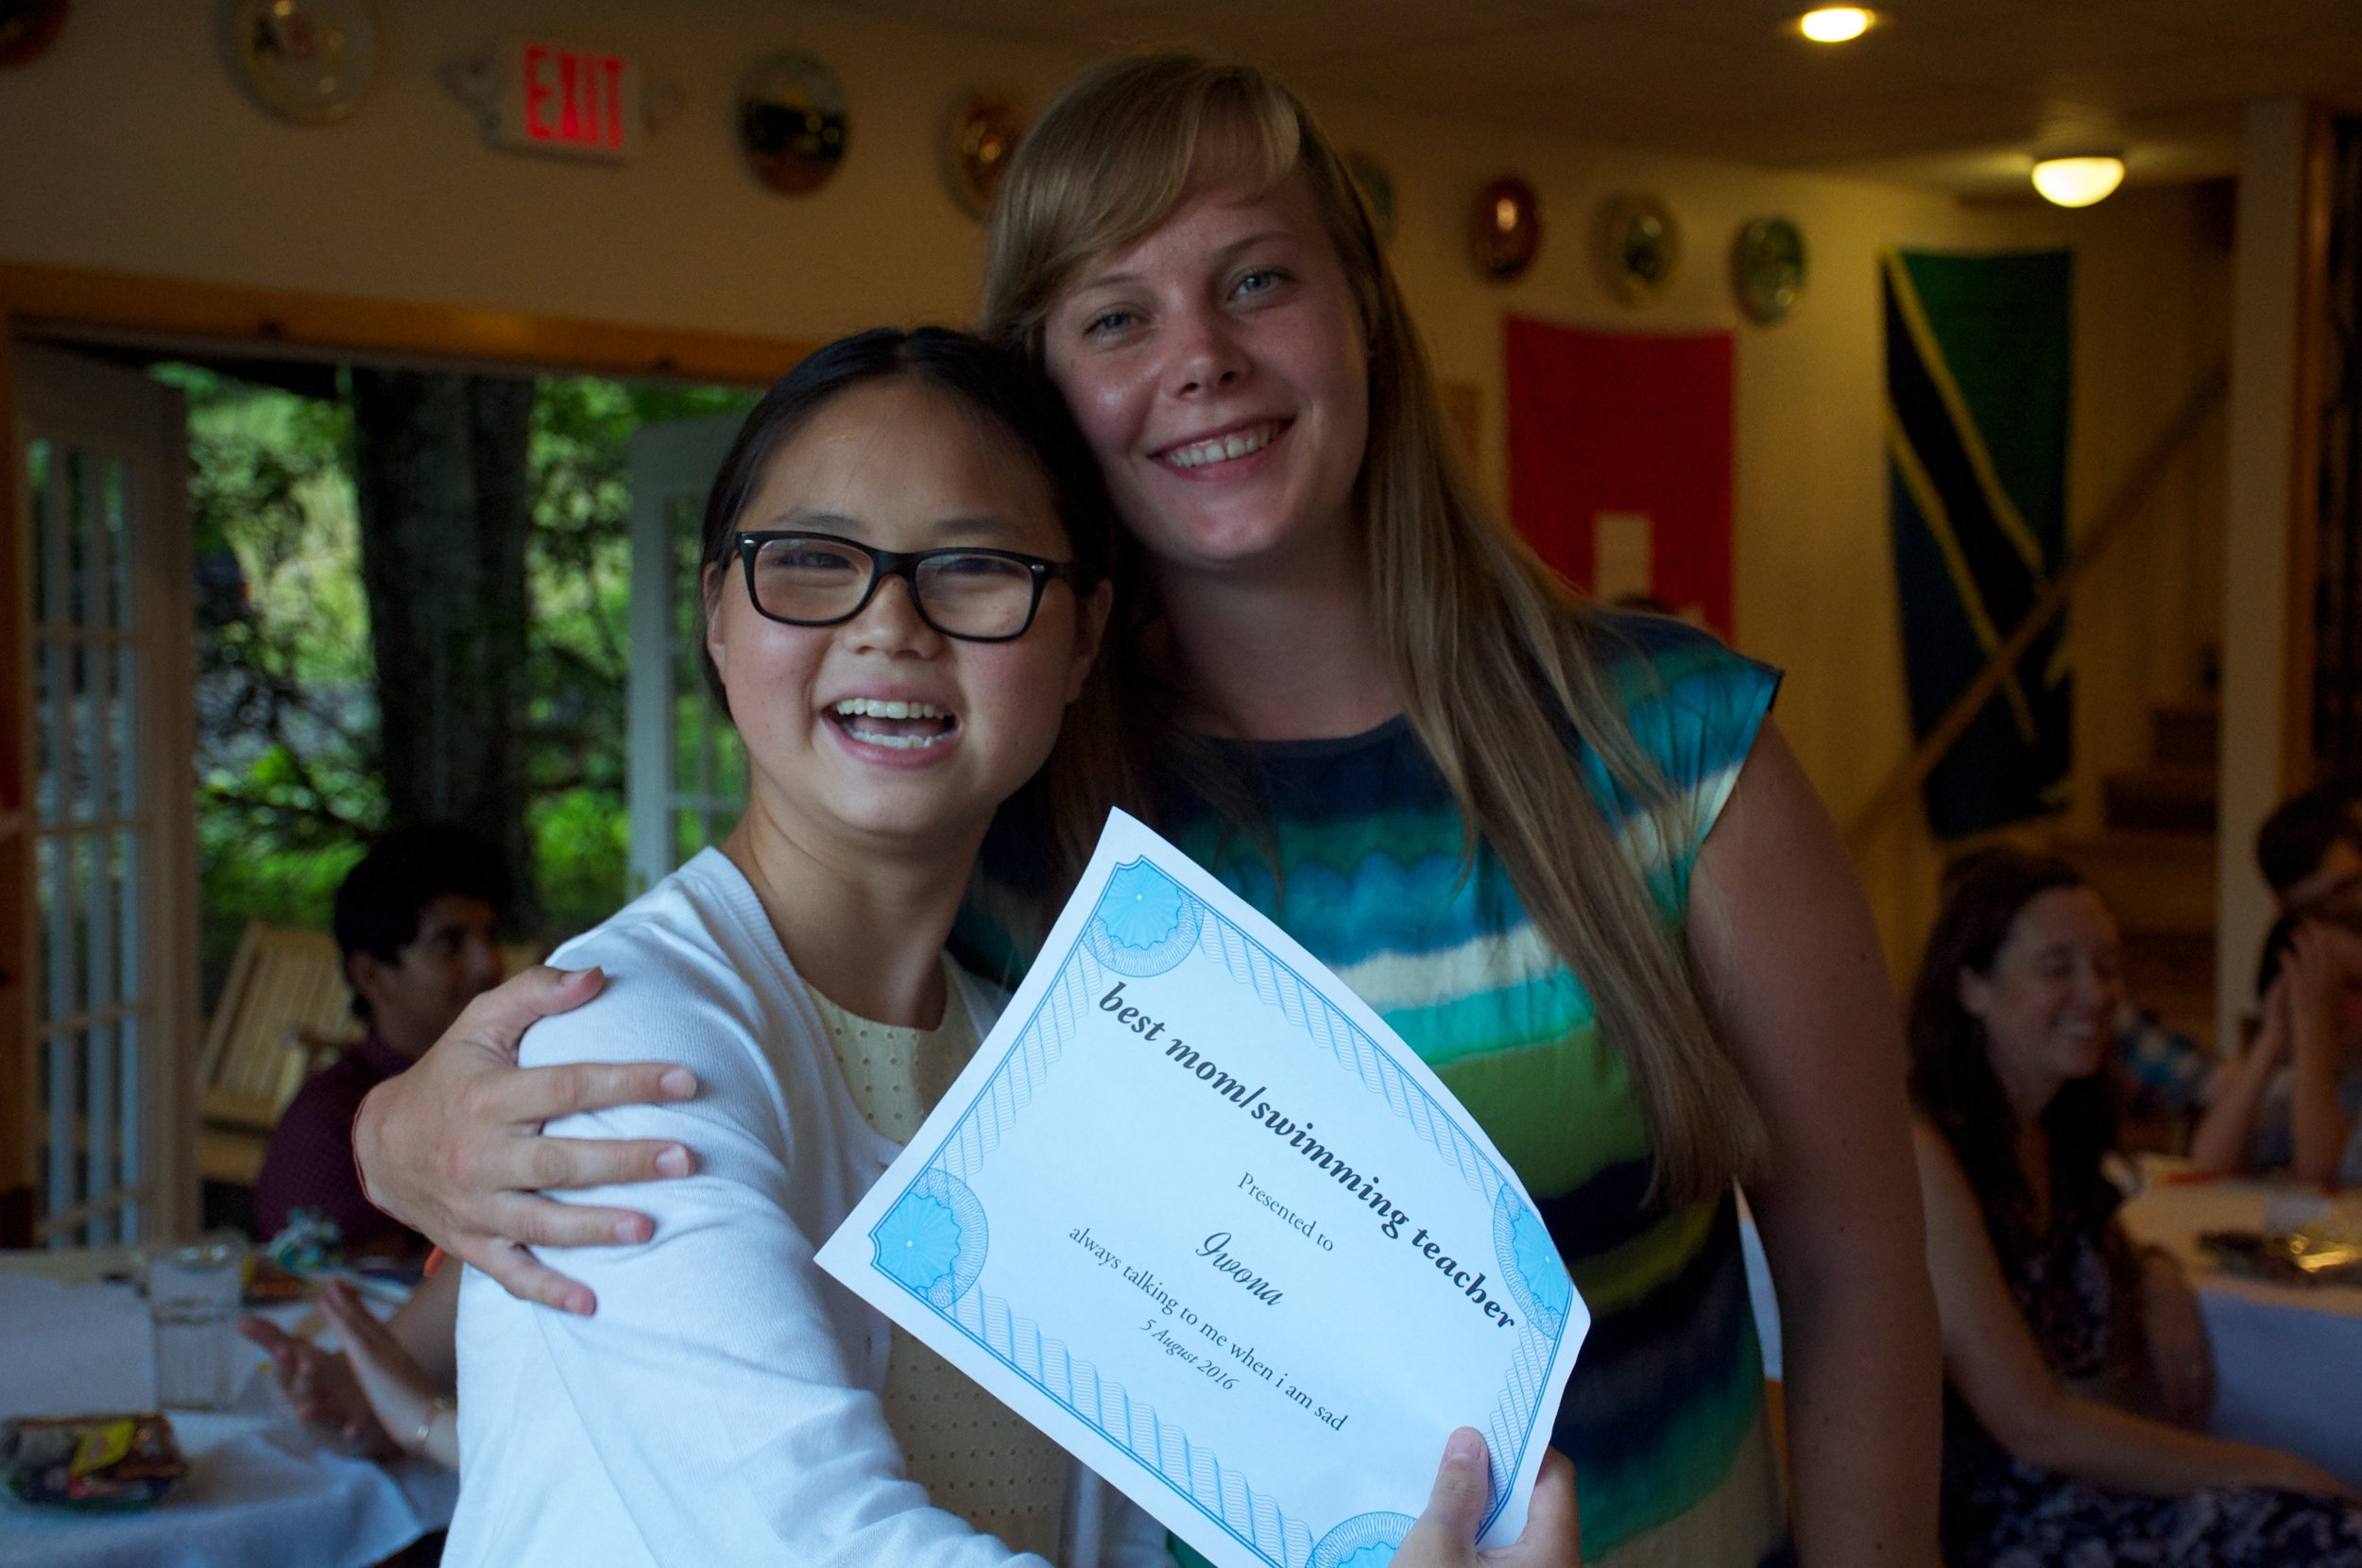 Camp Summer:  So many accomplishments to celebrate!